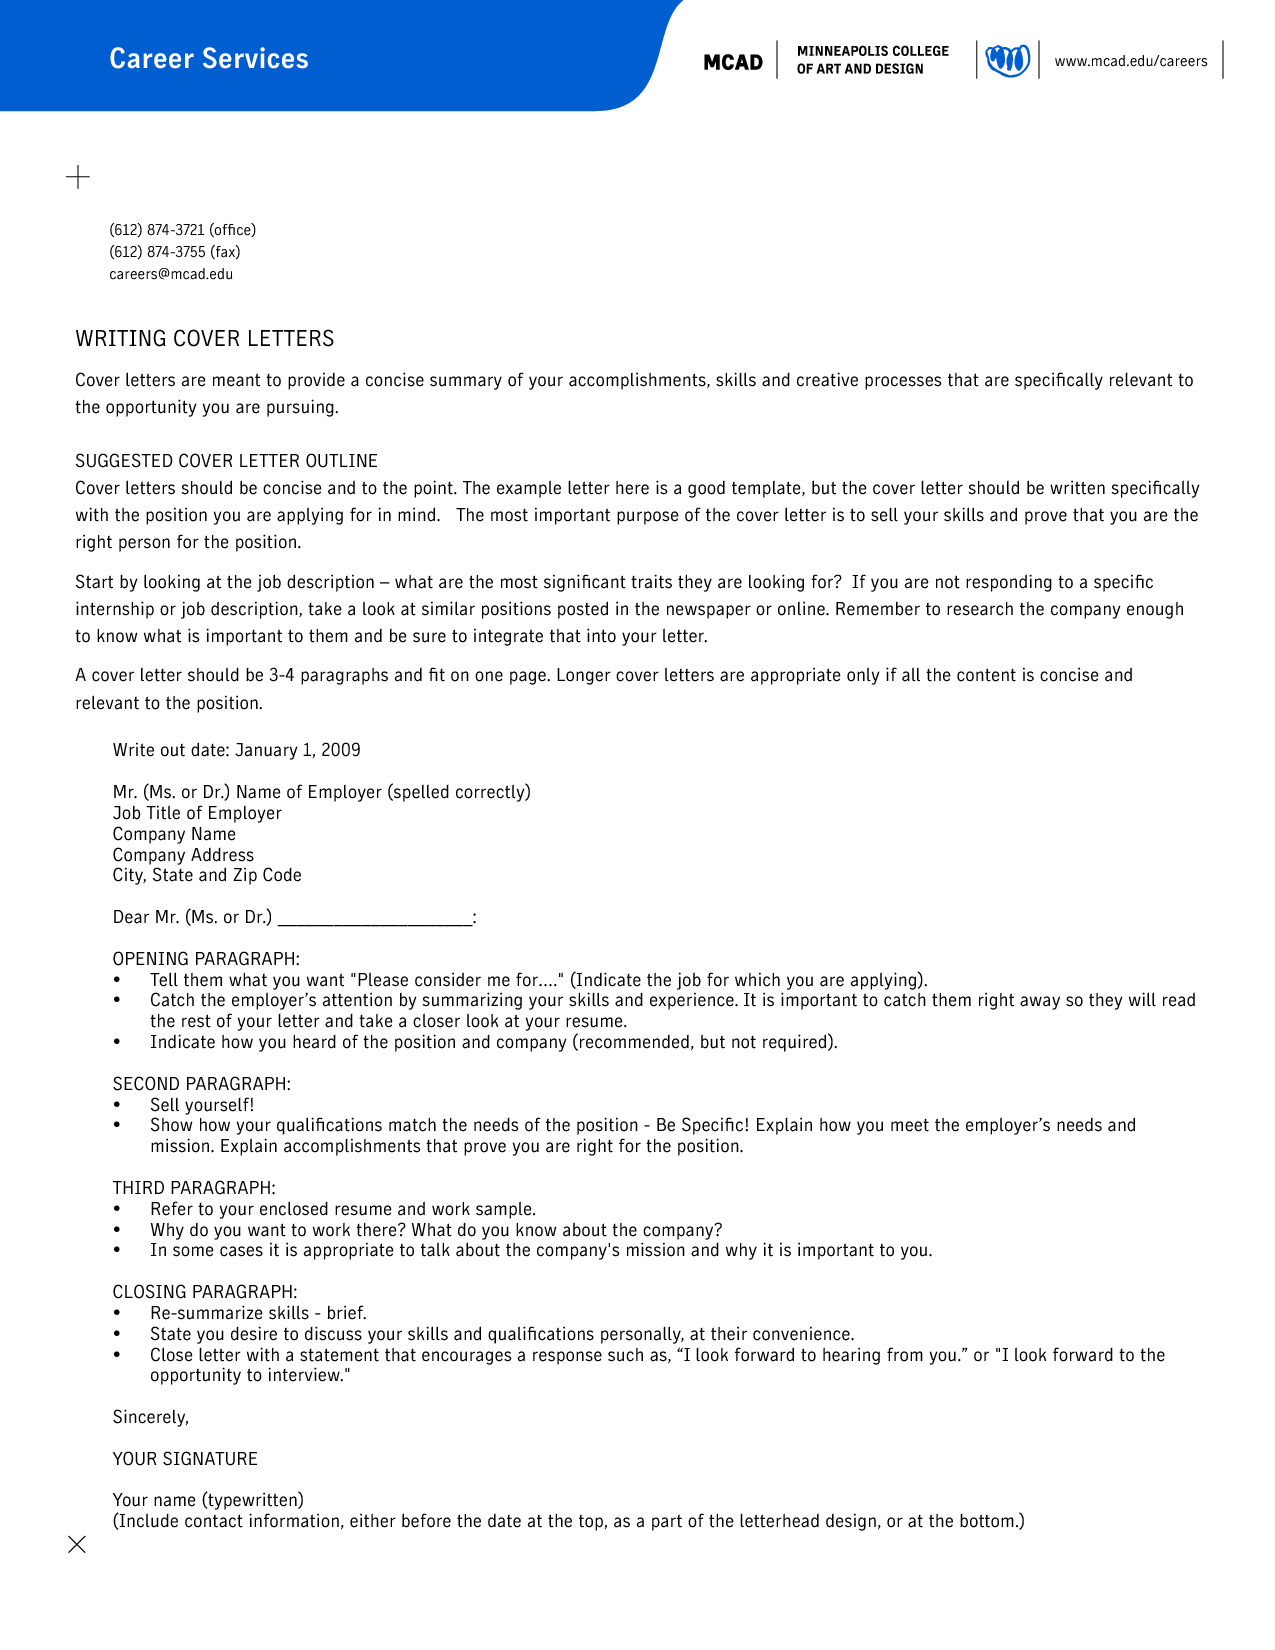 incredible grad school cover letter best resume graduate